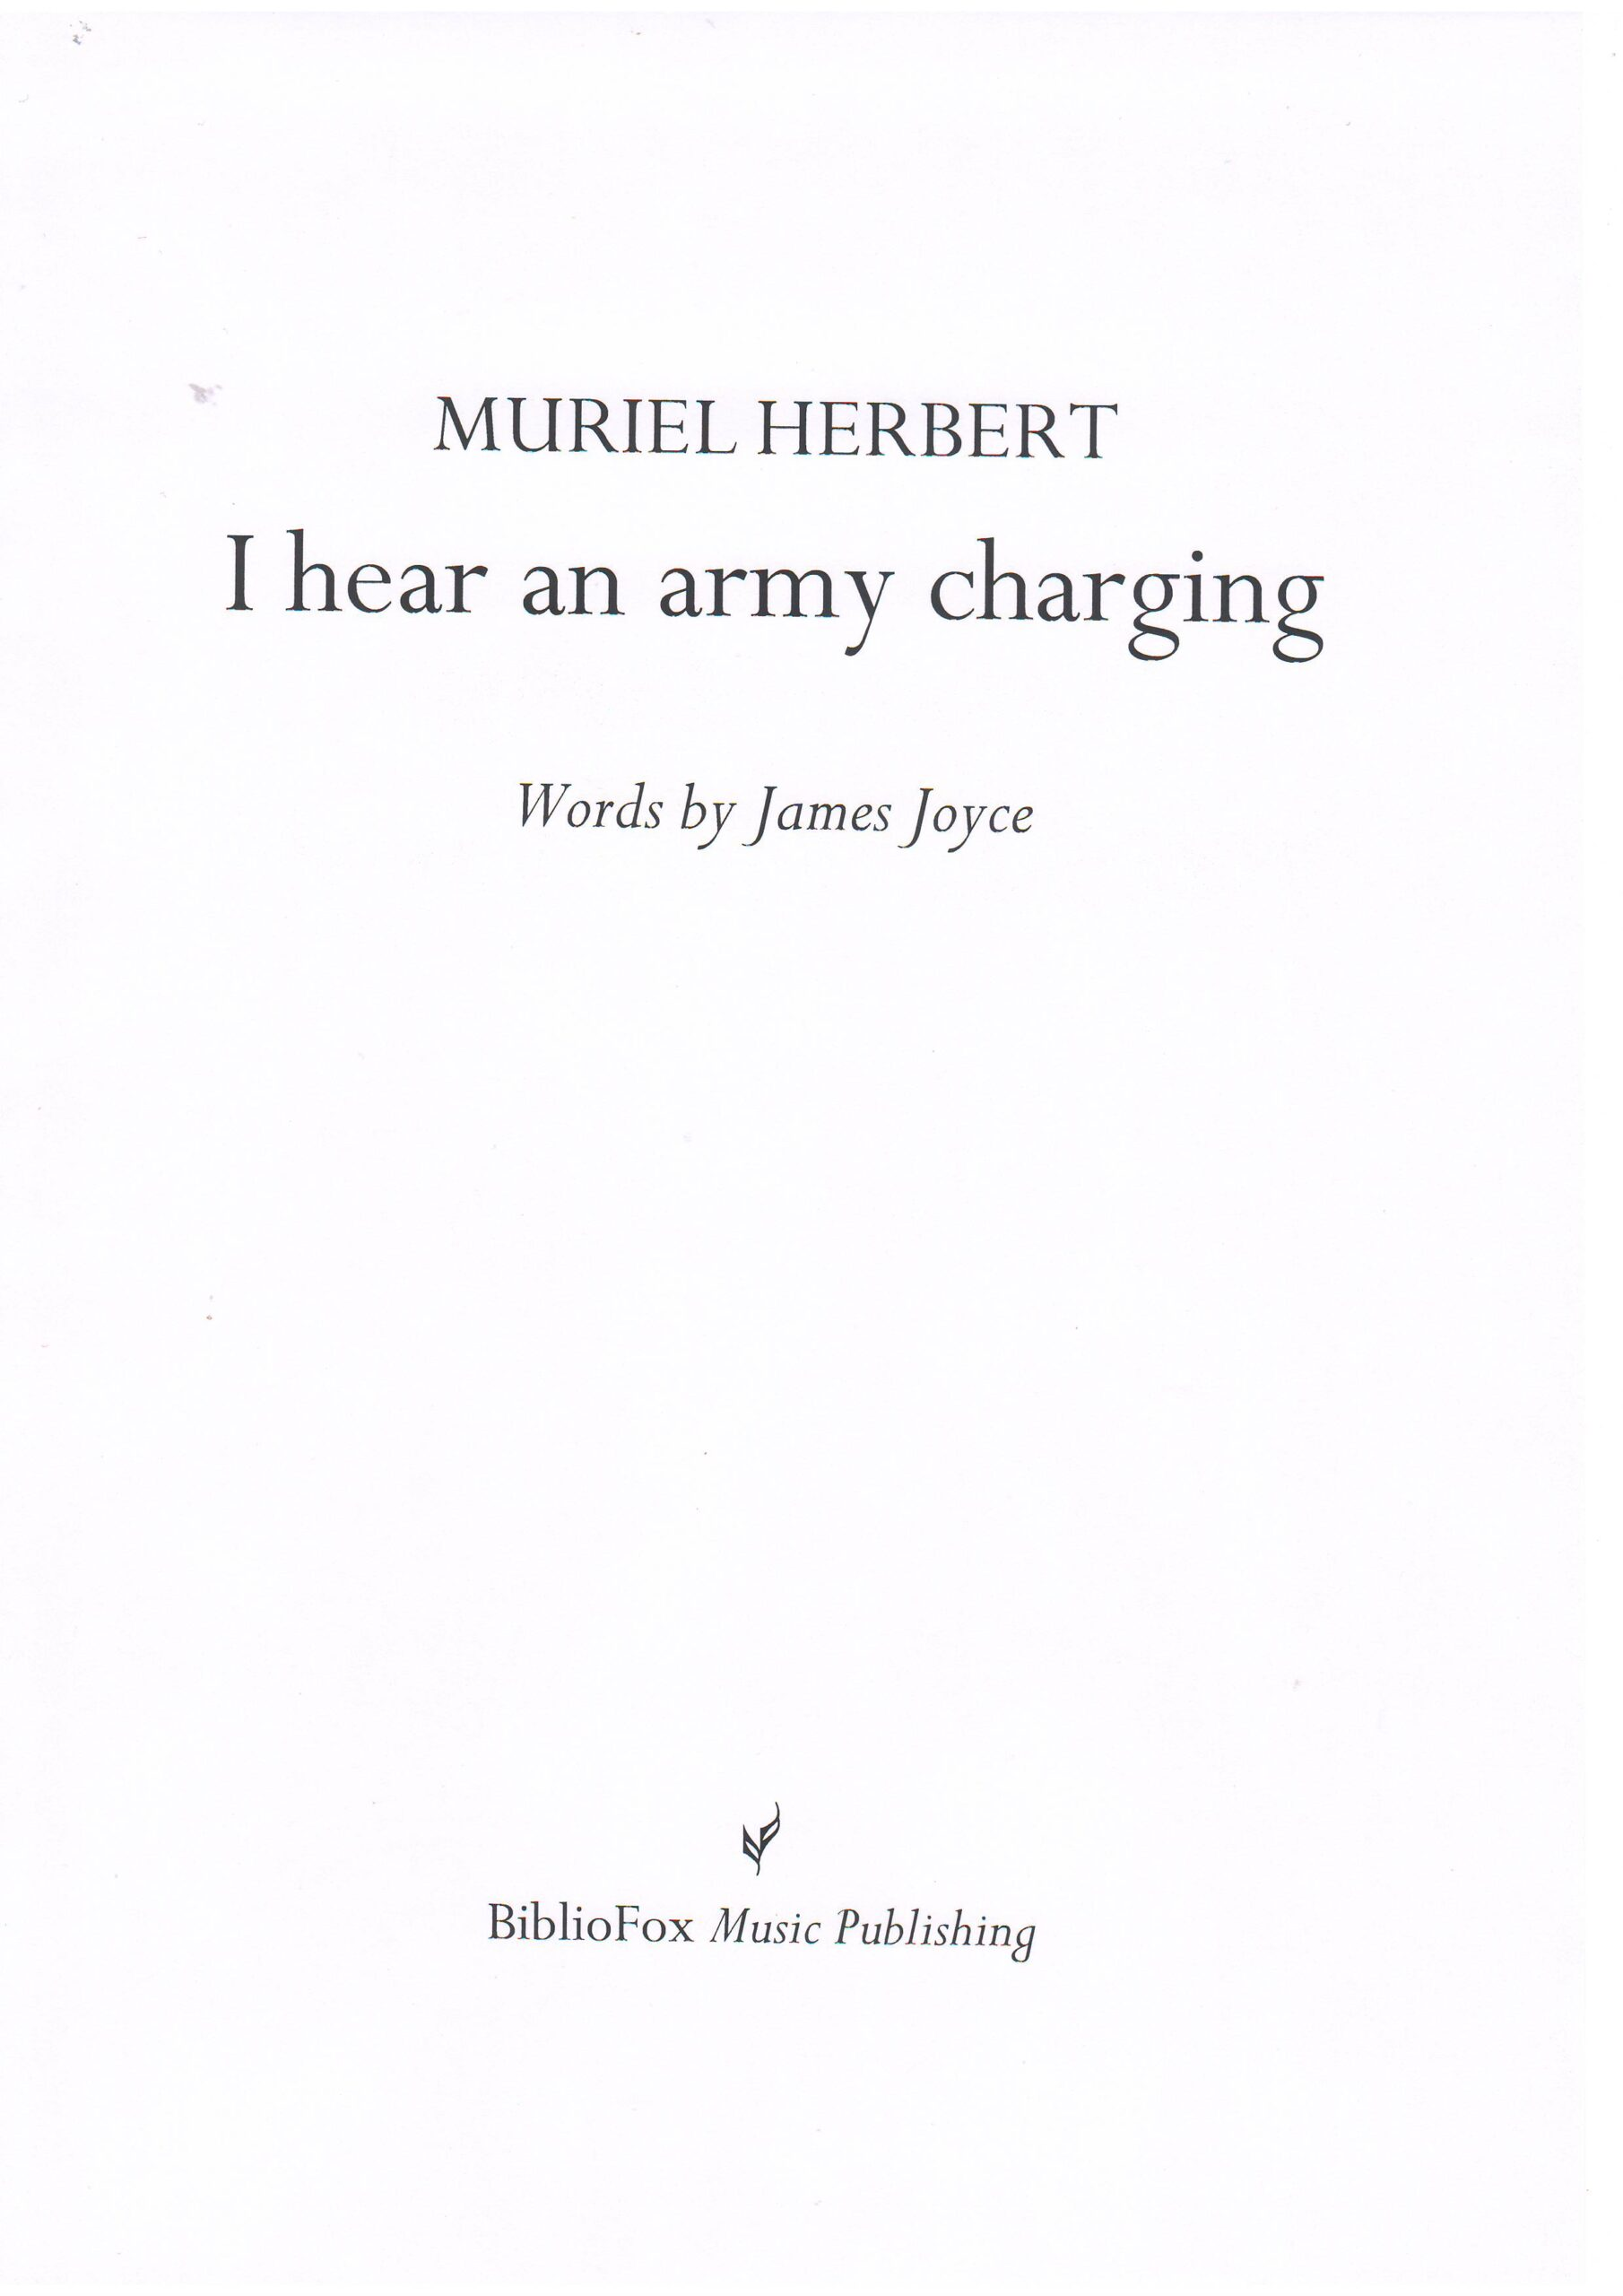 Cover page of Herbert I hear an army charging